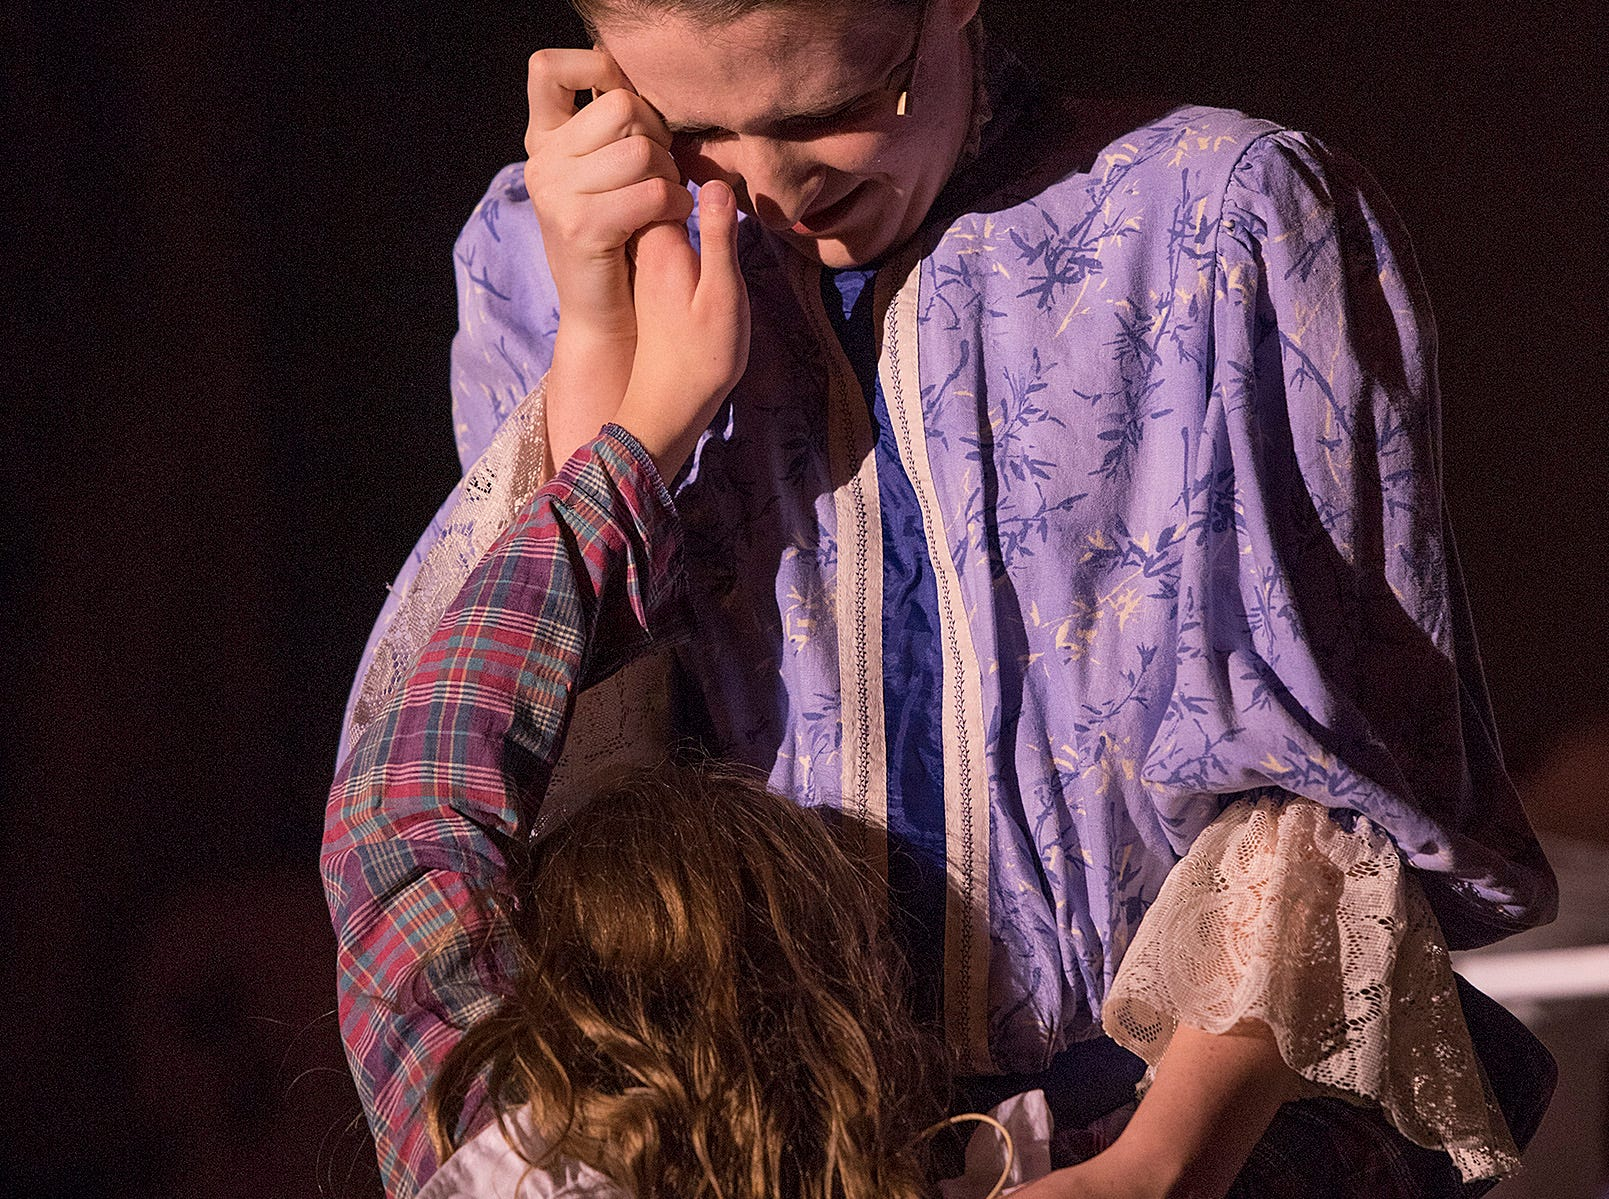 Kate Keller (Emma Pickett) breaks down upon learning that her daughter Helen (Jillian Picketti) folded her napkin after the meal, offering hope to Kate.